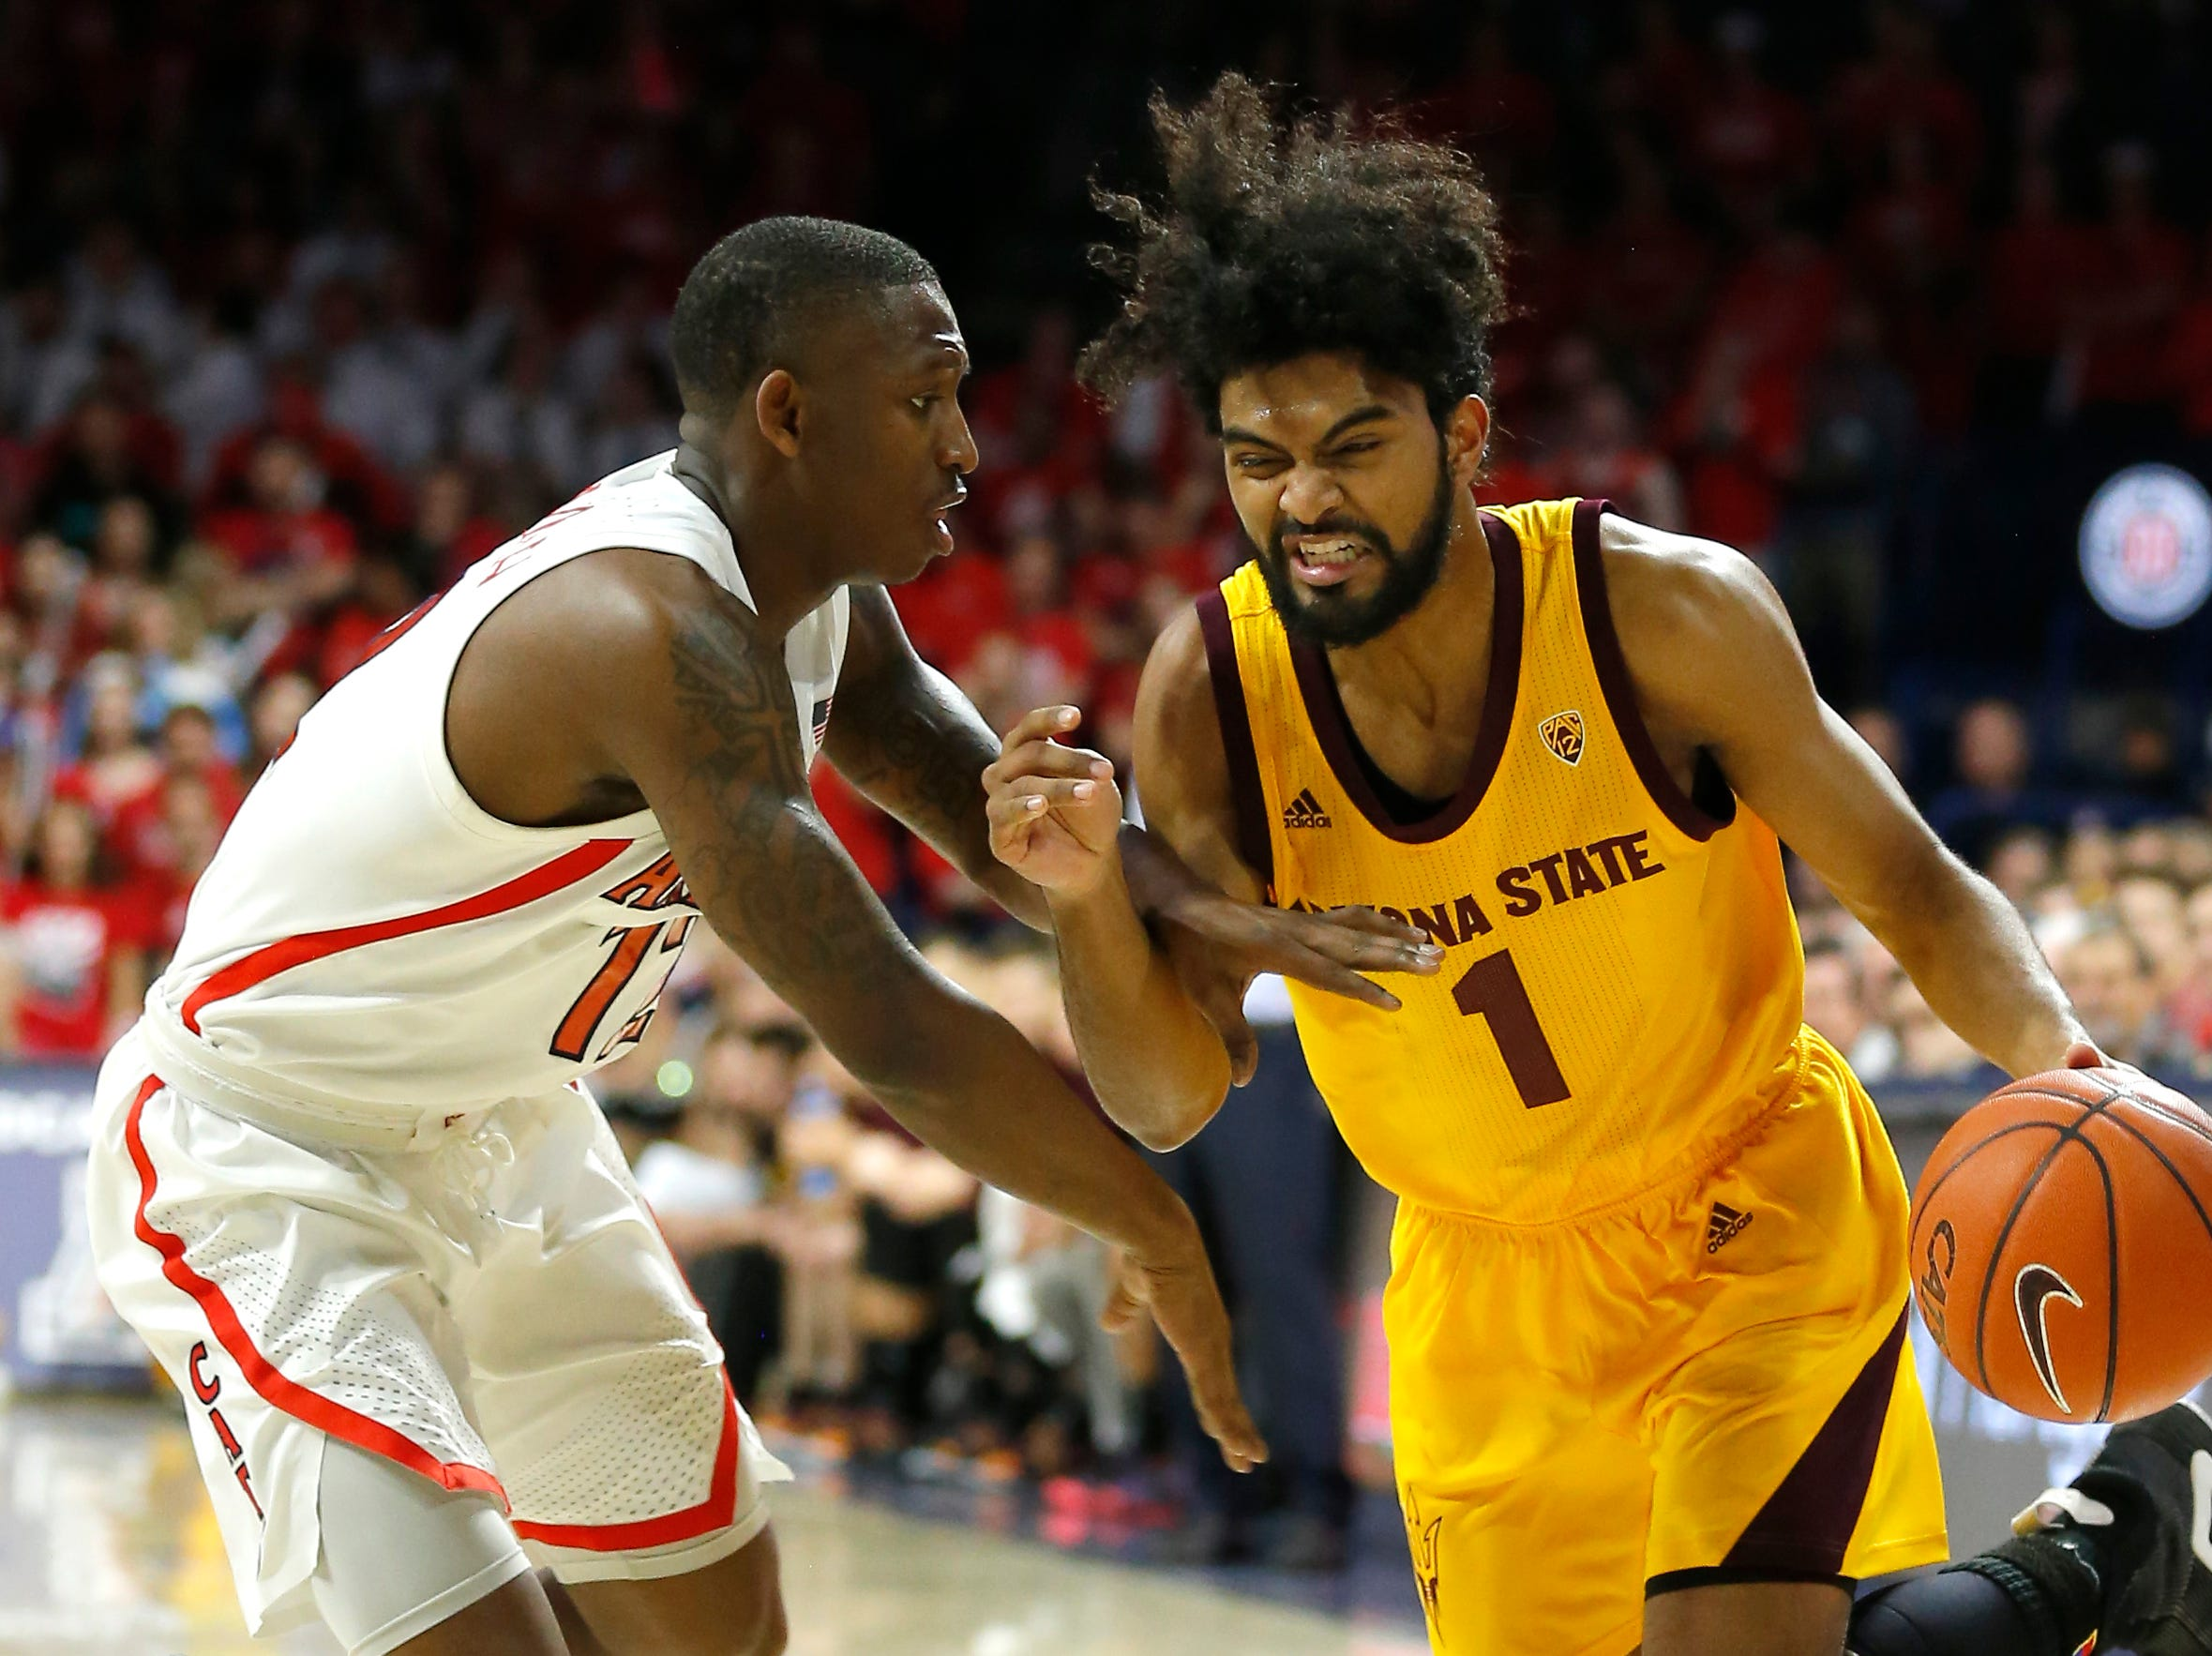 Arizona State guard Remy Martin, right, drives on Arizona guard Justin Coleman, left, in the first half during an NCAA college basketball game, Saturday, March 9, 2019, in Tucson, Ariz. (AP Photo/Rick Scuteri)